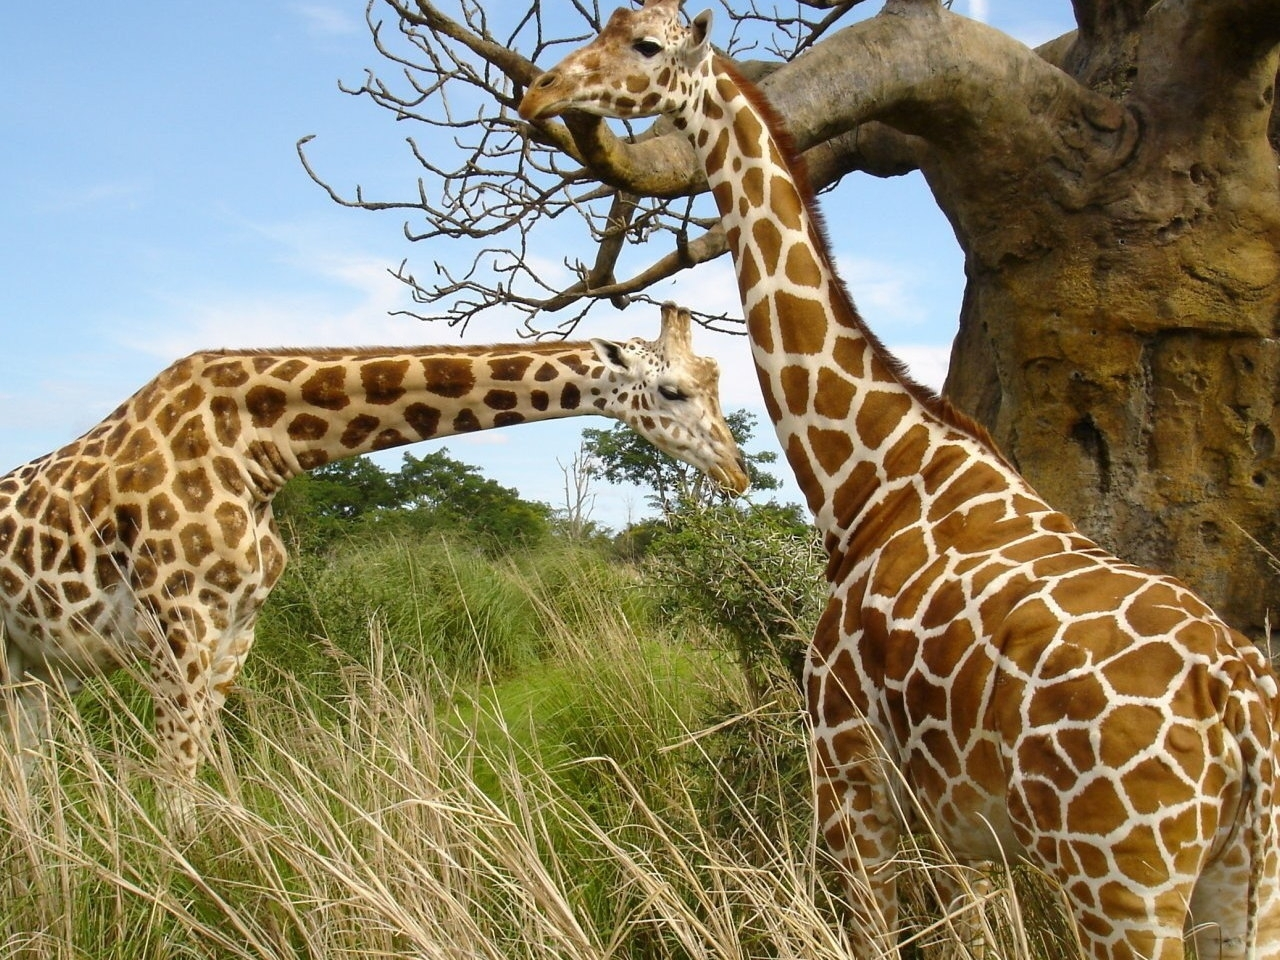 30379 download wallpaper Animals, Giraffes screensavers and pictures for free